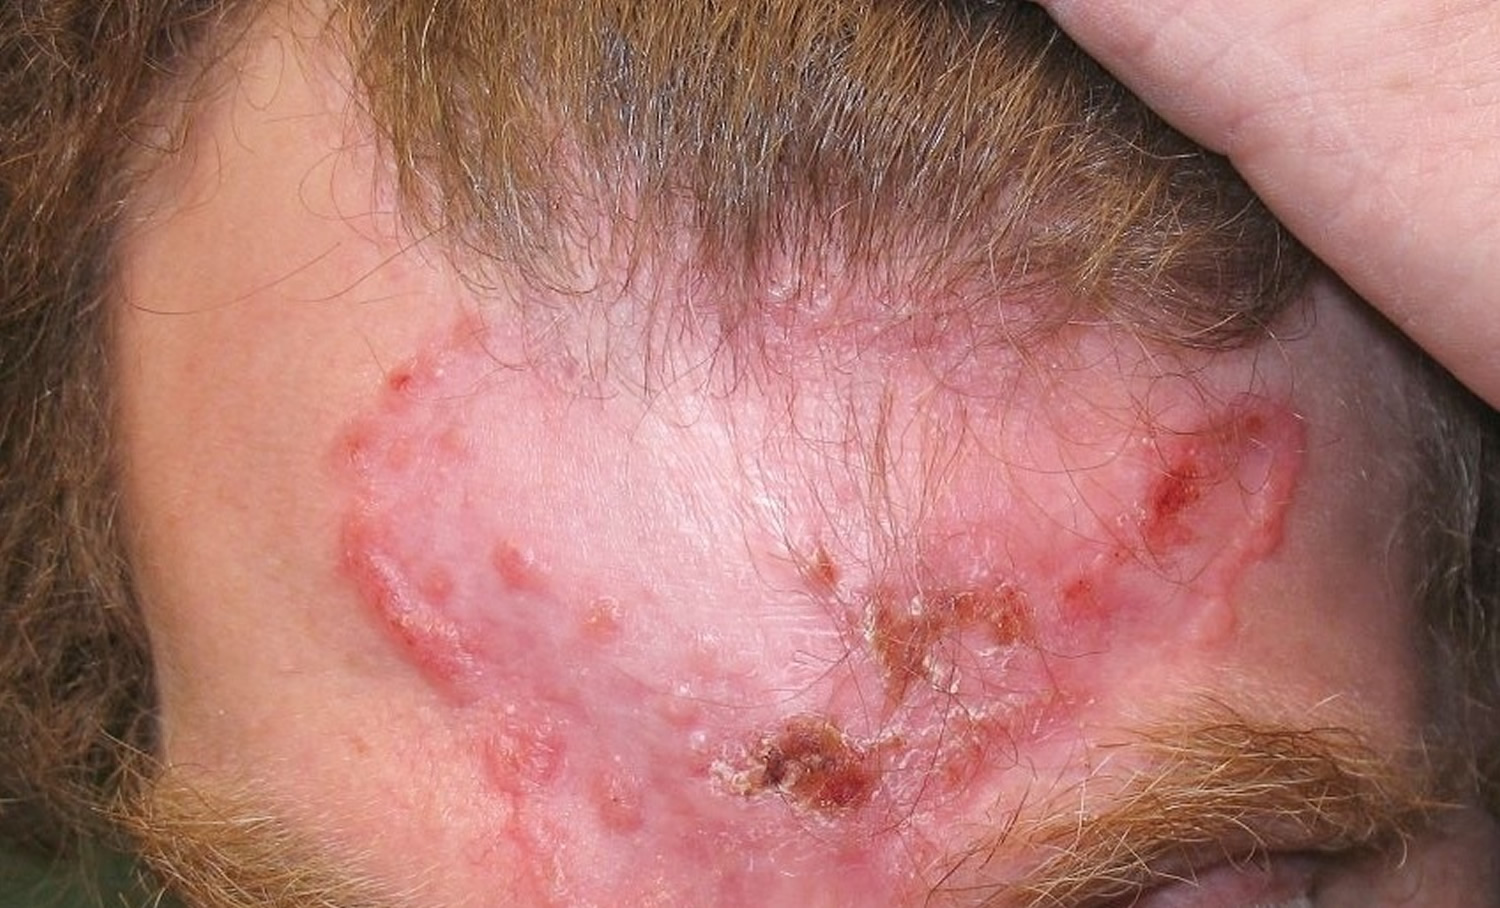 Basal cell carcinoma on scalp